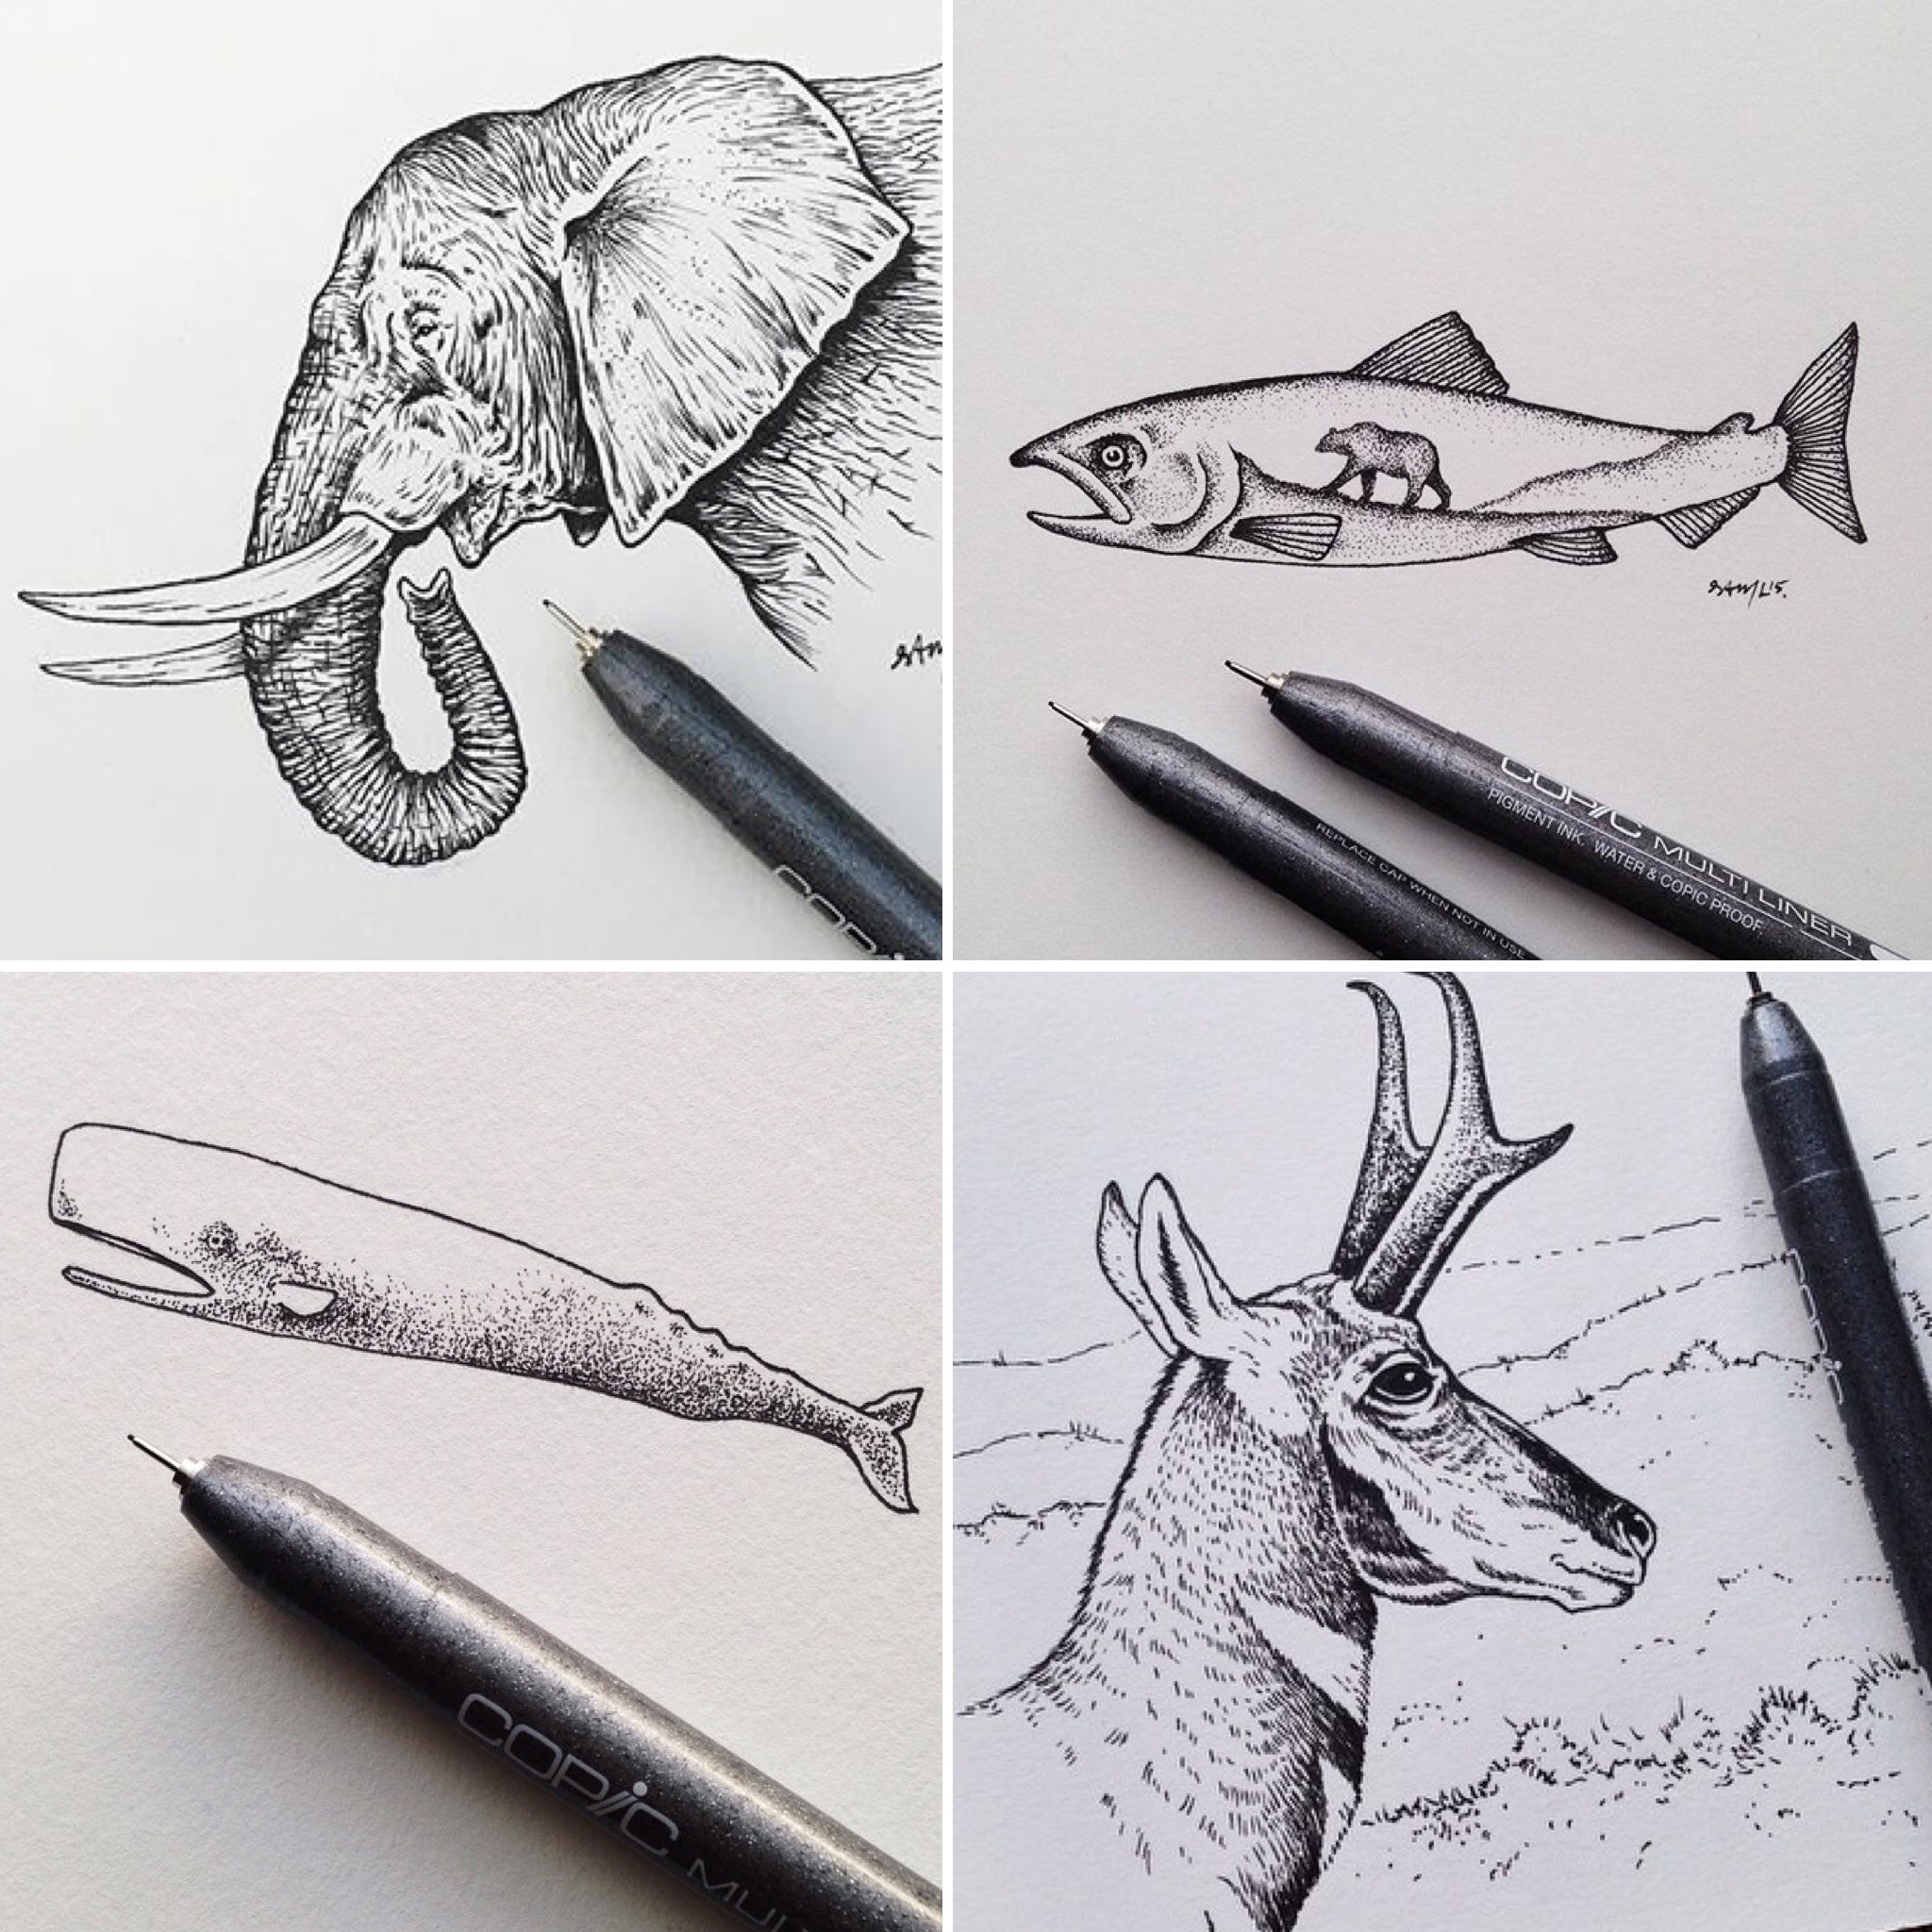 sam-larson-artist-illustrations